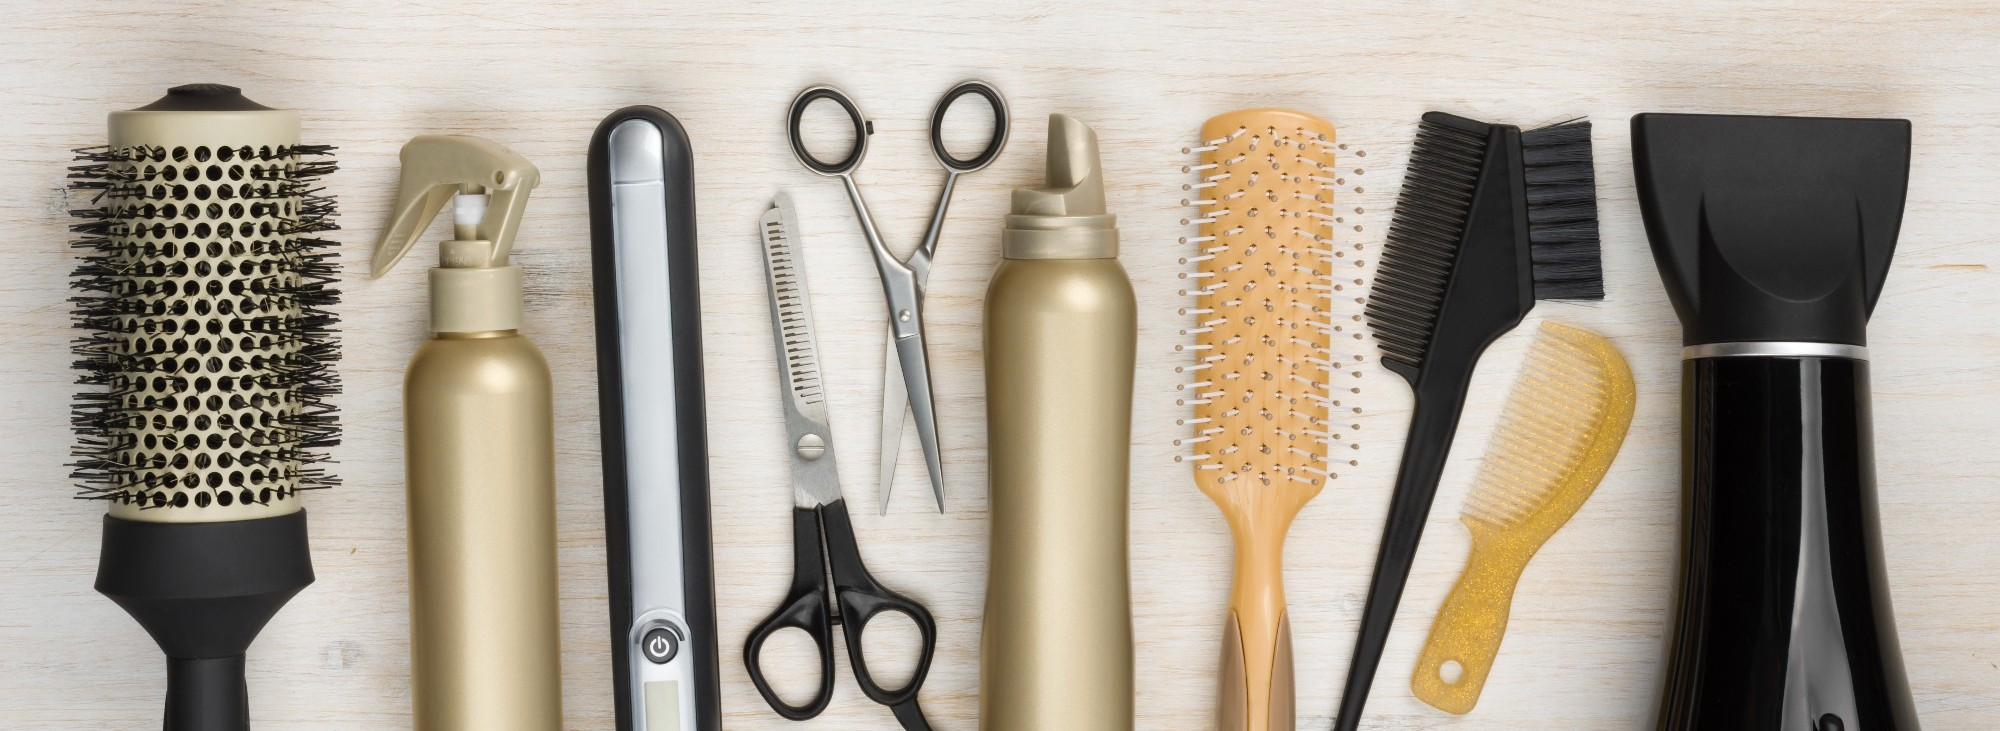 Tools for Our Beauty Care Services in Ridgewood, NJ